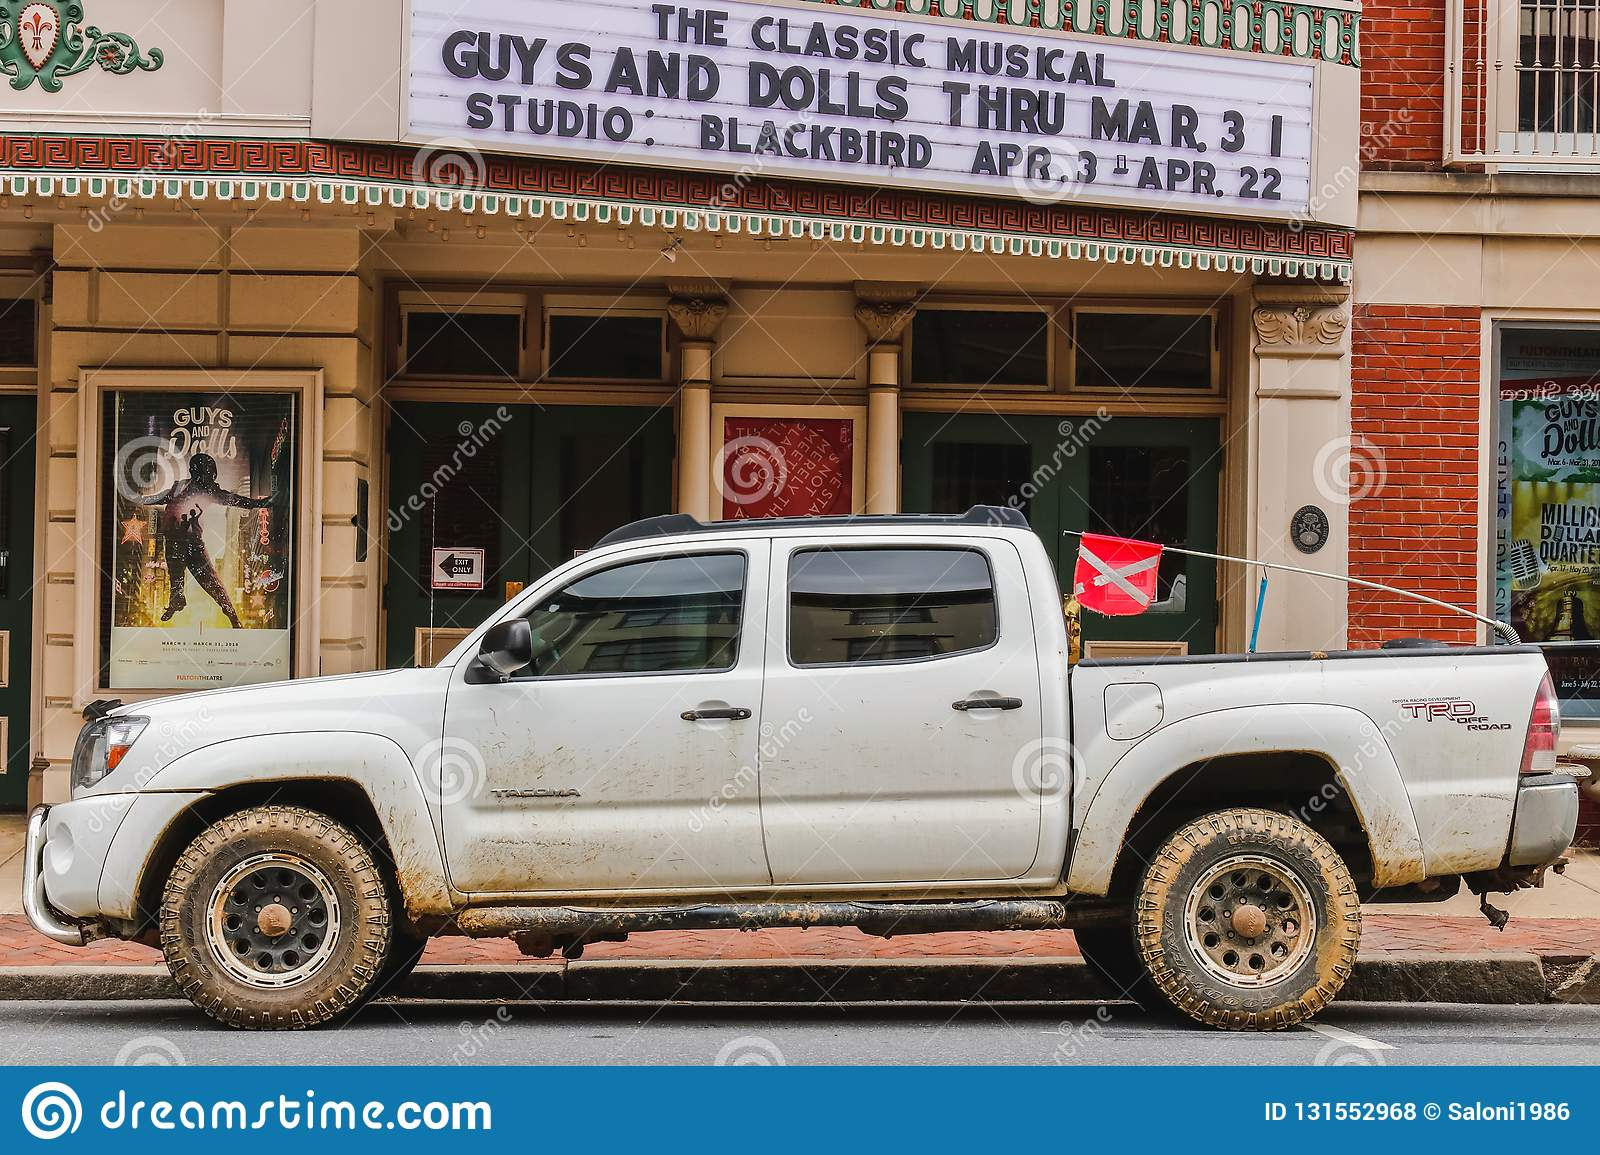 LANCASTER, PENNSYLVANIA - MARCH 21, 2018: Pickup truck near the Fulton theater in historic downtown